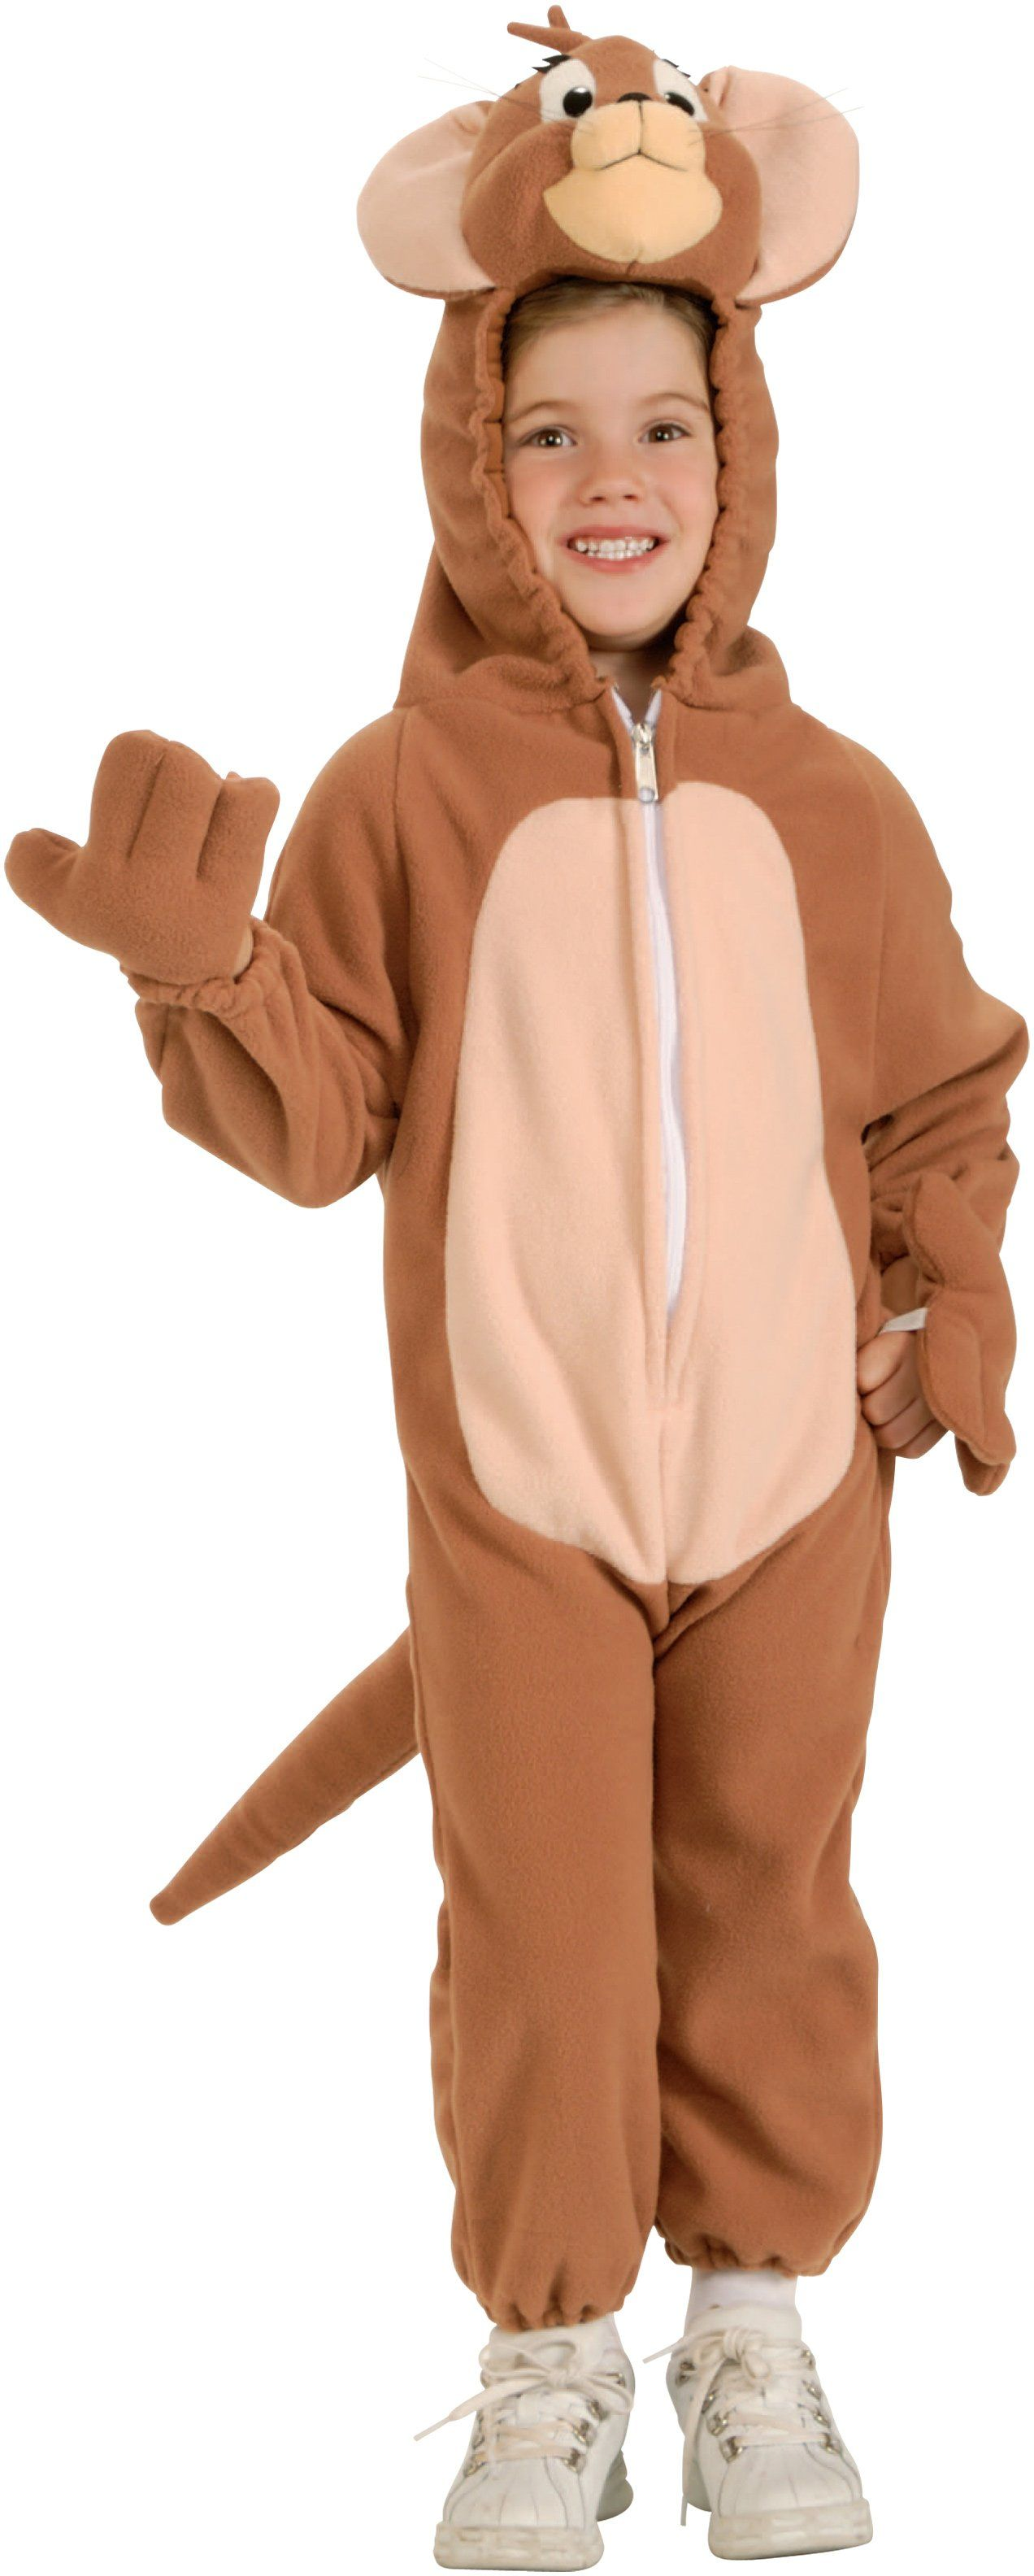 Found Micahu0027s next costume. Mouse CostumeKid ...  sc 1 st  Pinterest & Tom u0026 Jerry - Jerry Toddler / Child Costume | Costumes Children ...